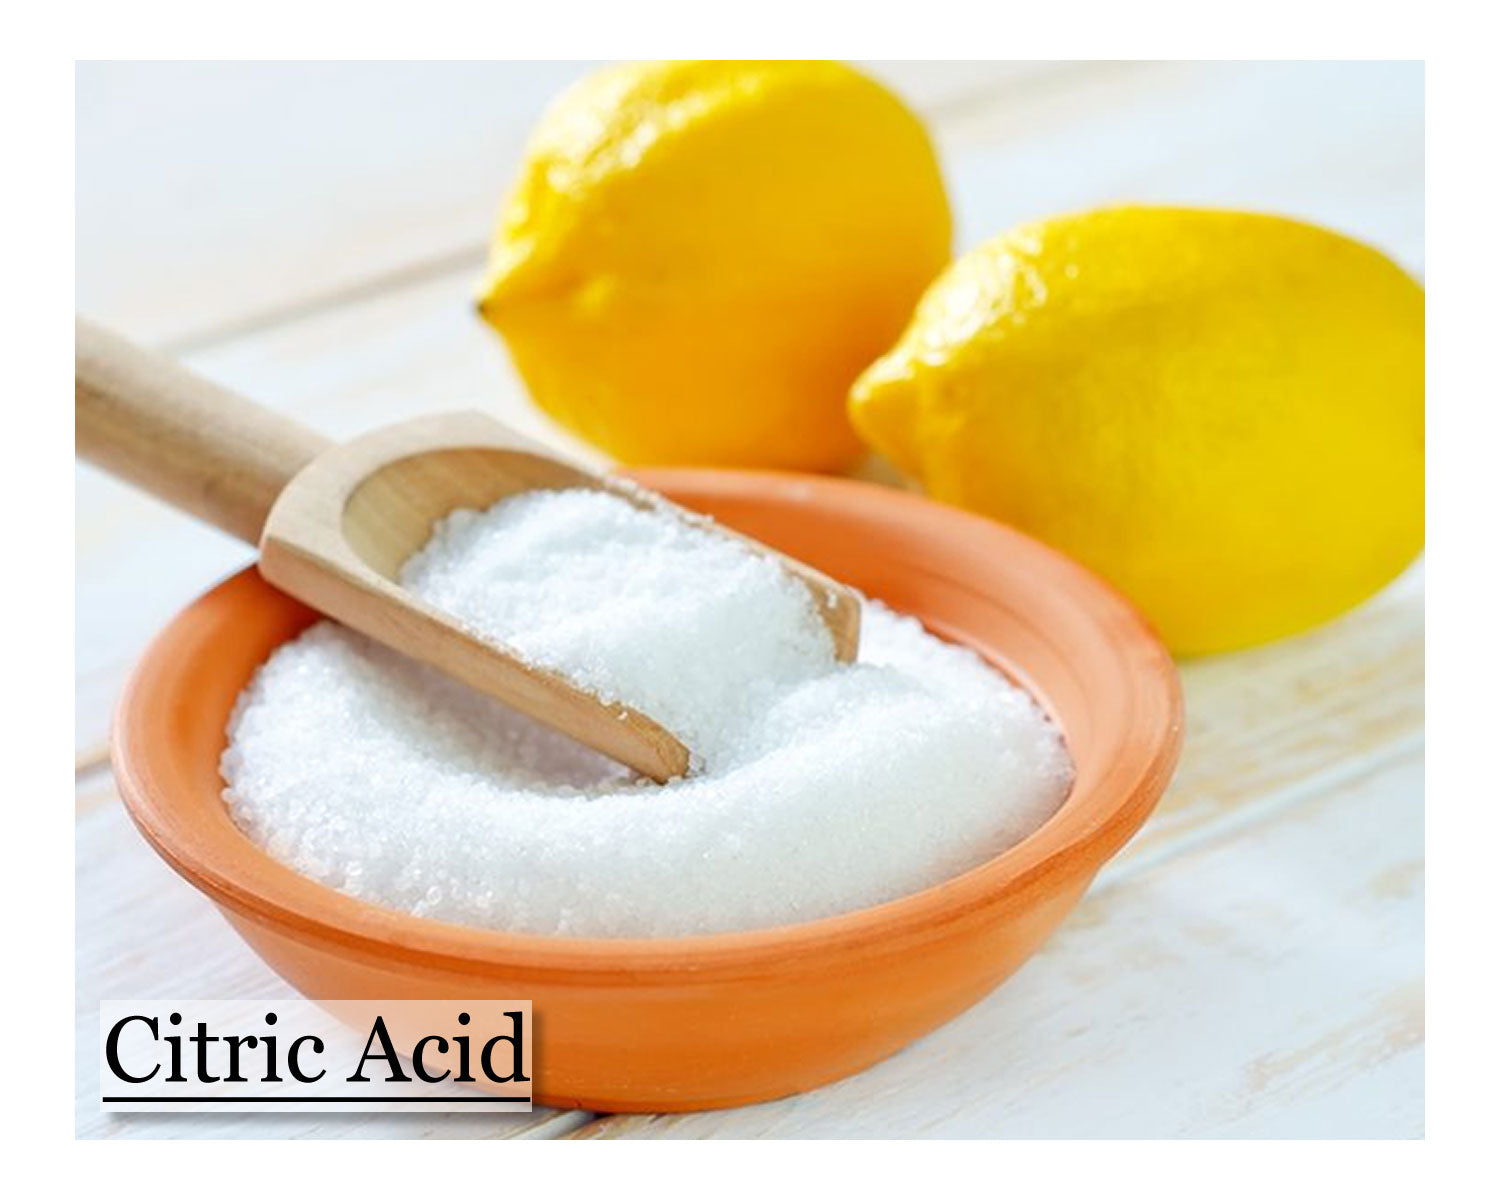 Citric Acid - 1 oz